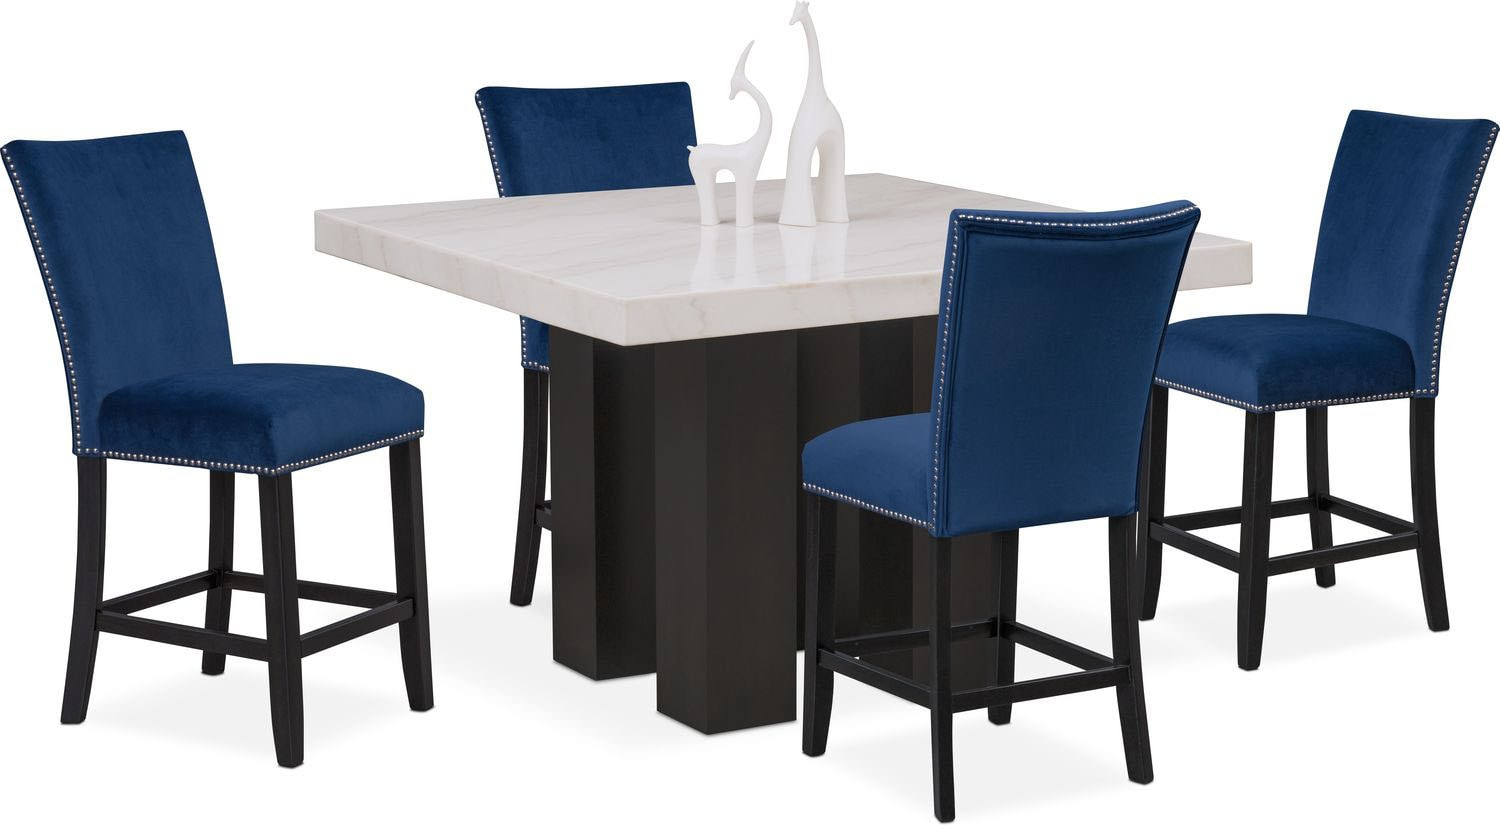 Artemis Counter Height Dining Table And 4 Upholstered Stools   Blue ...